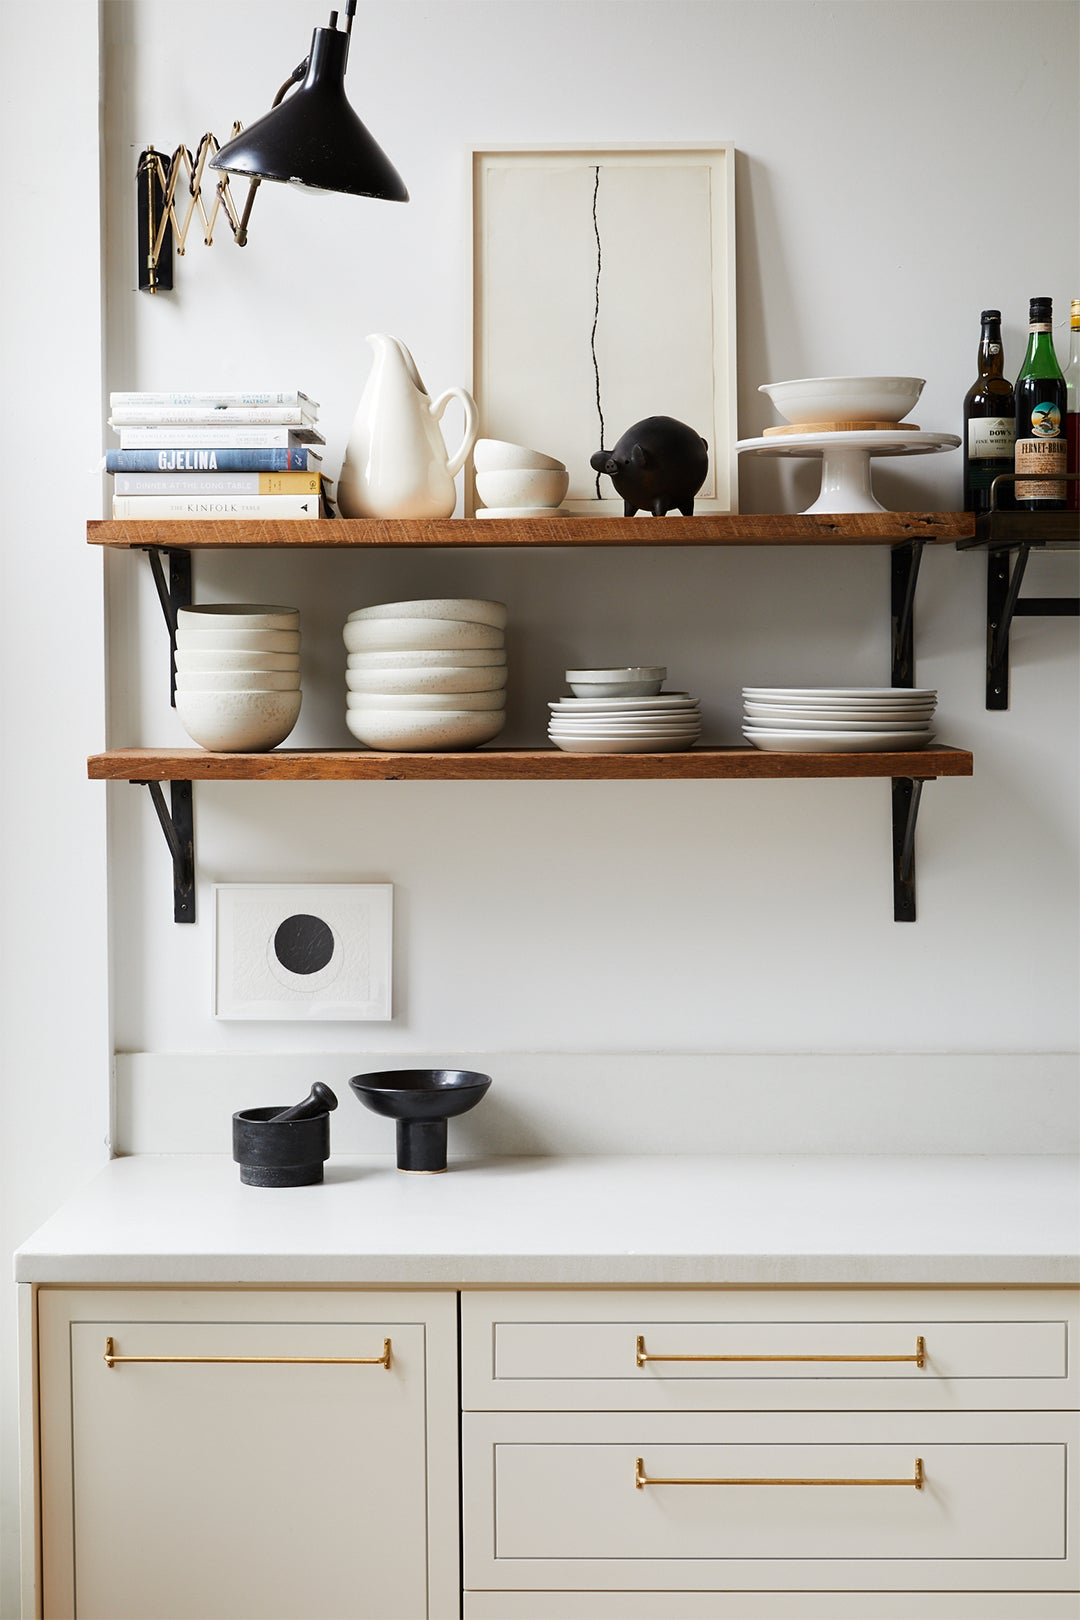 white cabinets with open shelving